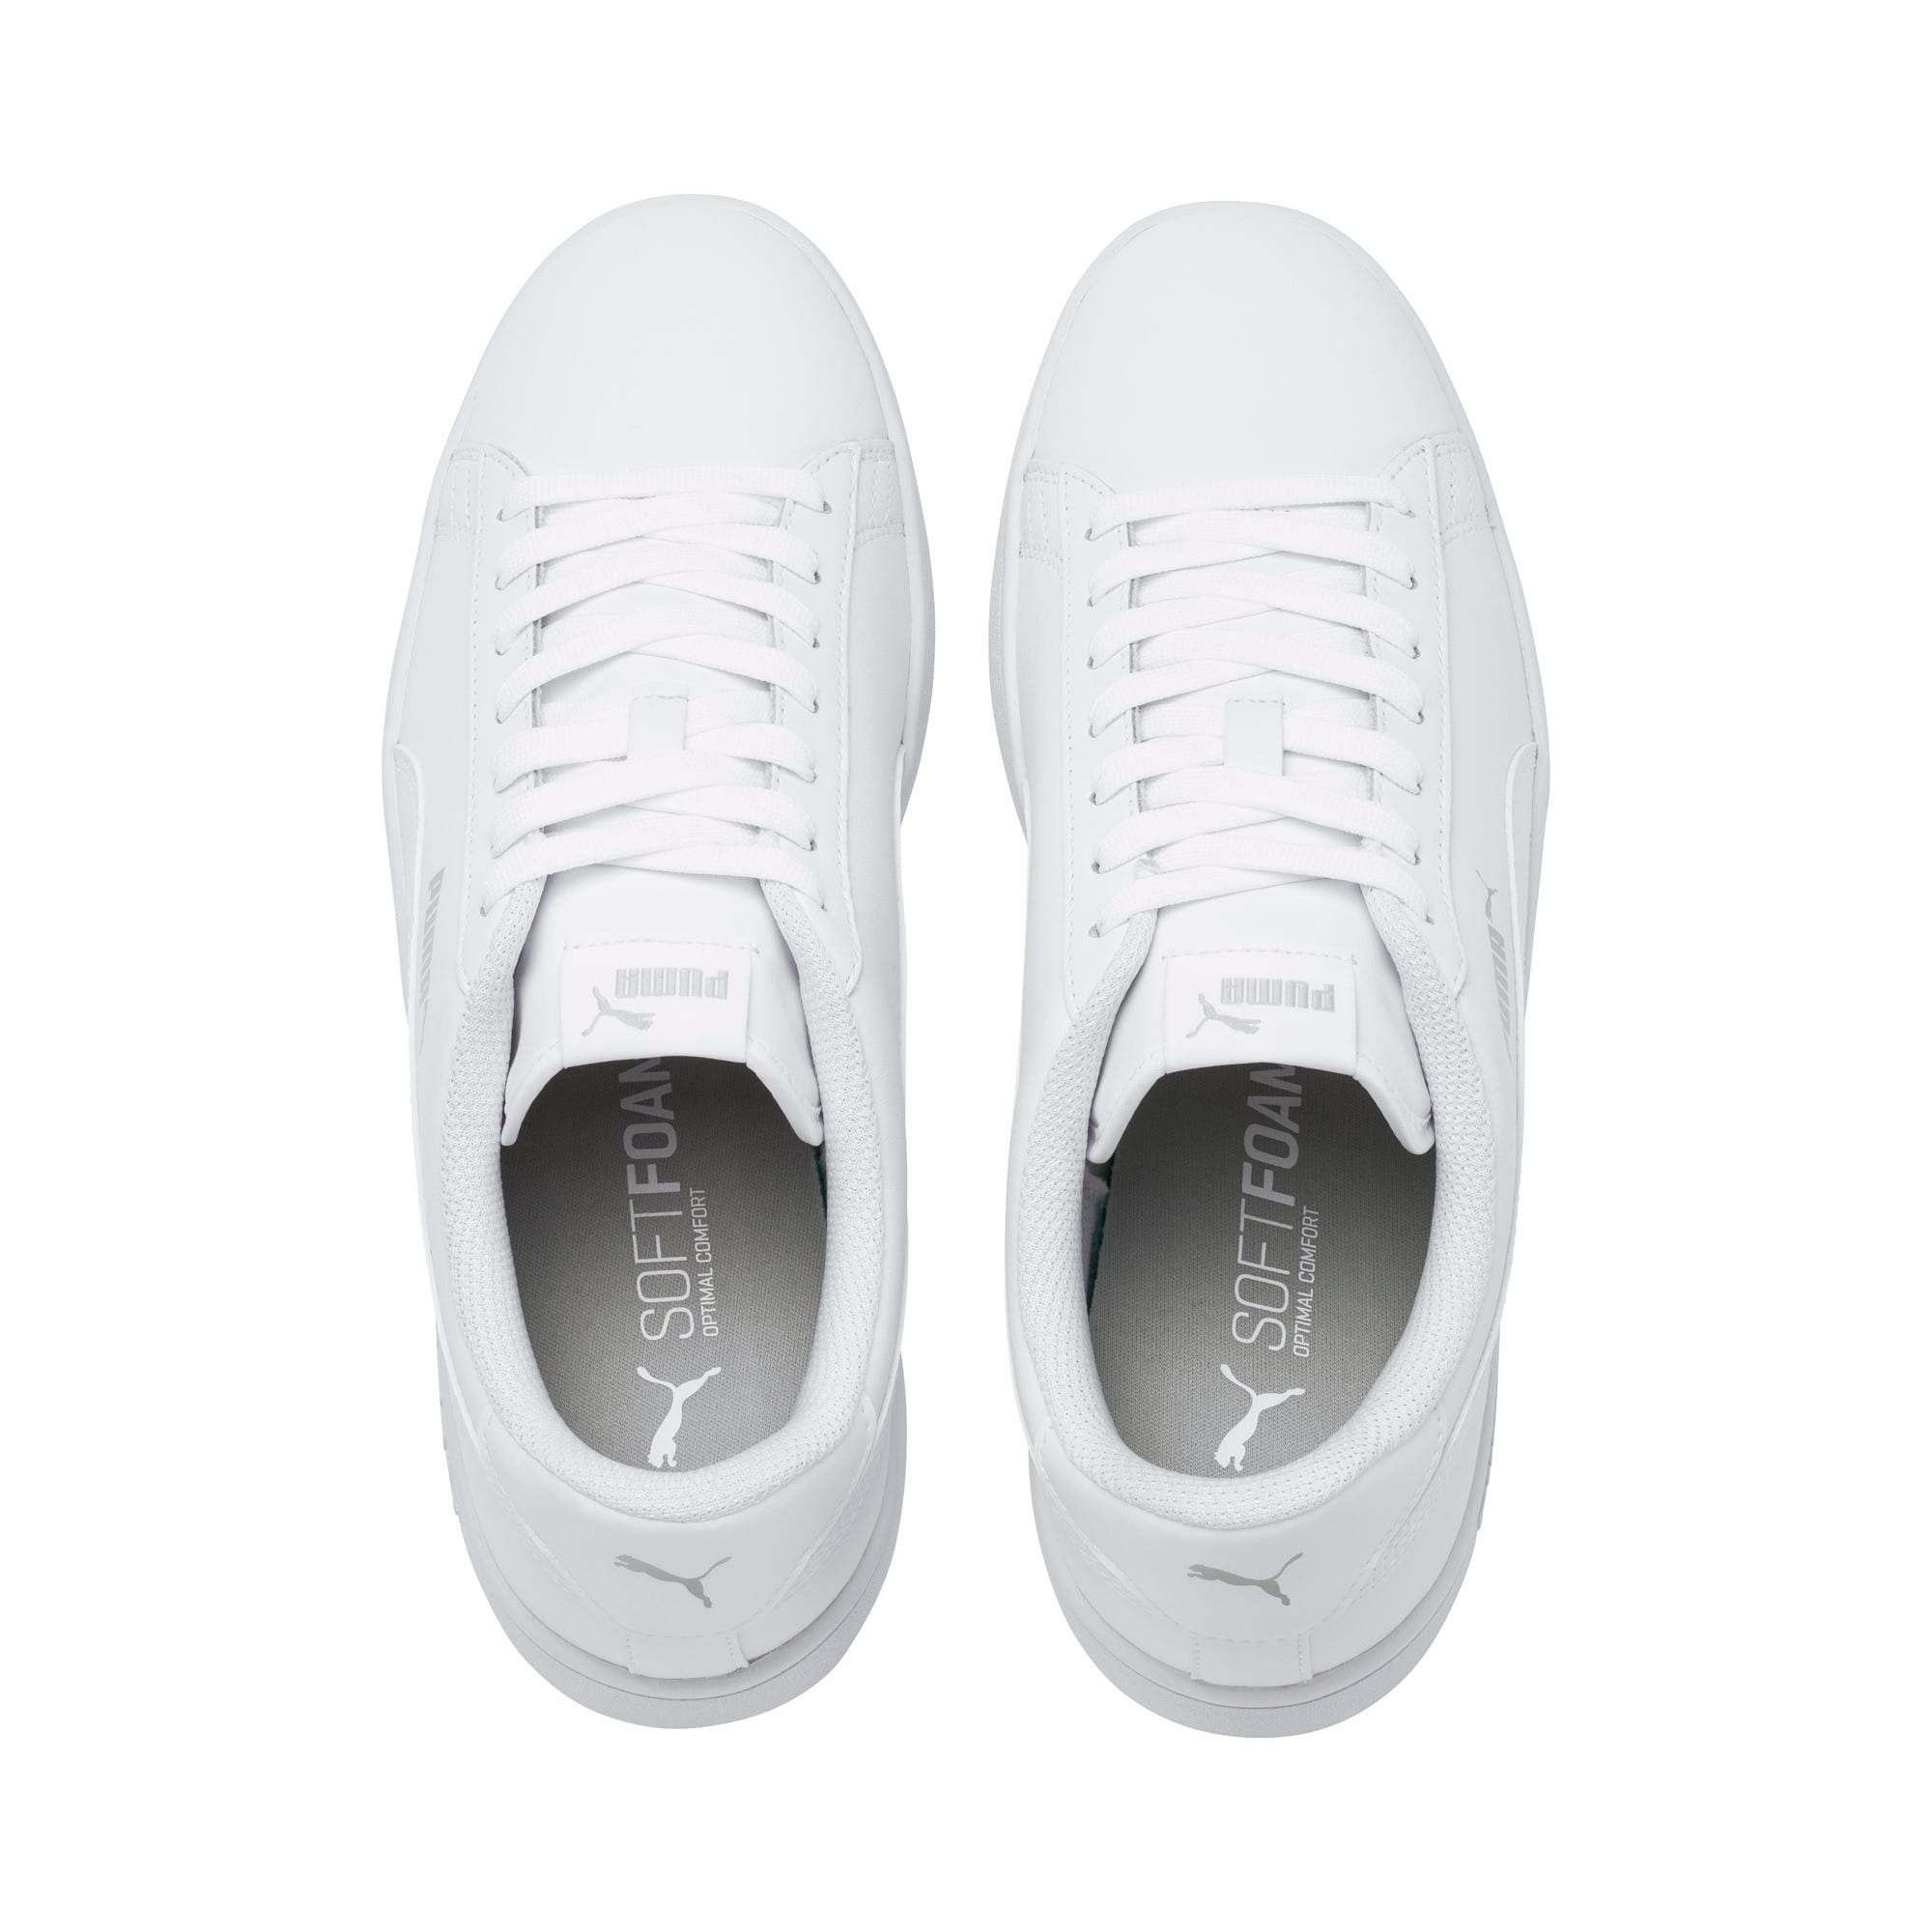 Thumbnail 6 of Puma Smash v2 L, Puma White-Puma White, medium